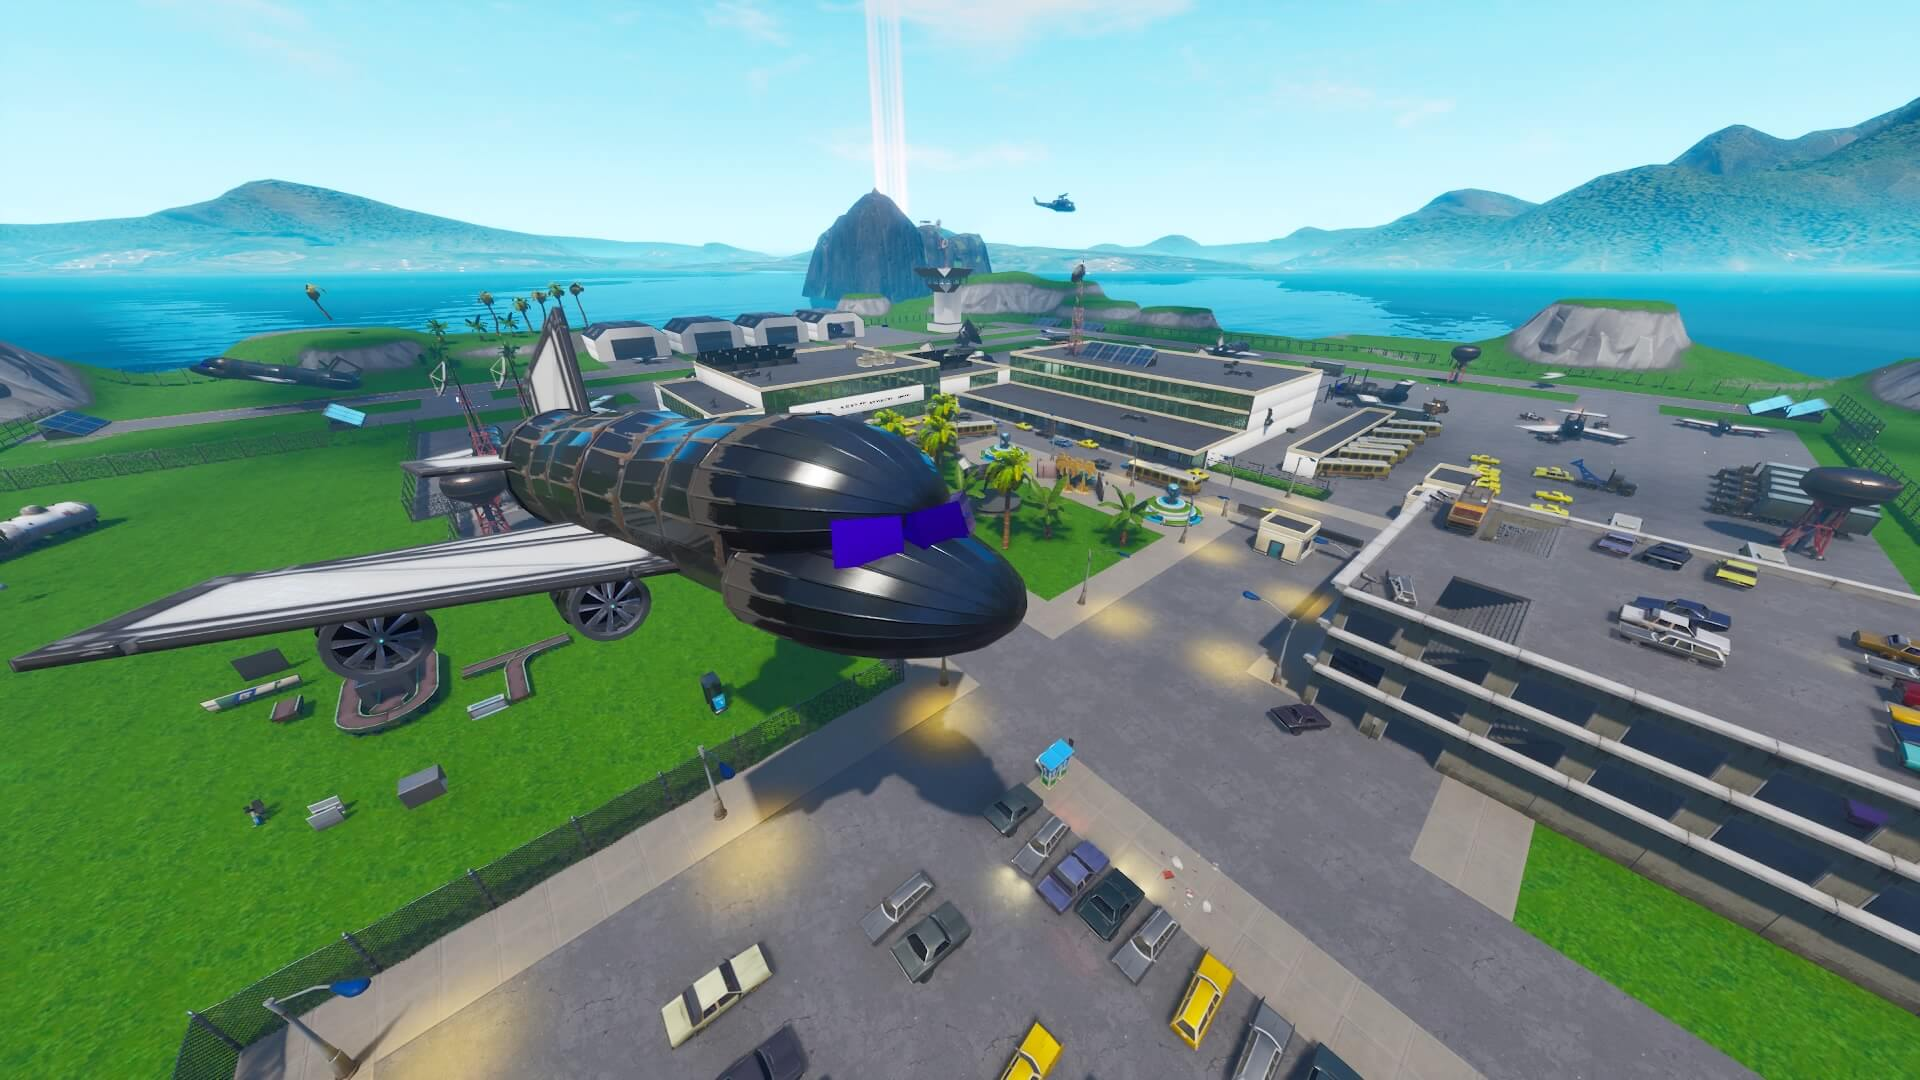 Fortnite Hide and Seek Map Codes - Fortnite Creative Codes ... on scout maps, minecraft maps, battlefield 3 maps, garry's mod maps, portal maps, ttt maps, tf2 maps, games maps, team fortress 2 maps, cod maps, spy maps, terraria maps, good maps,